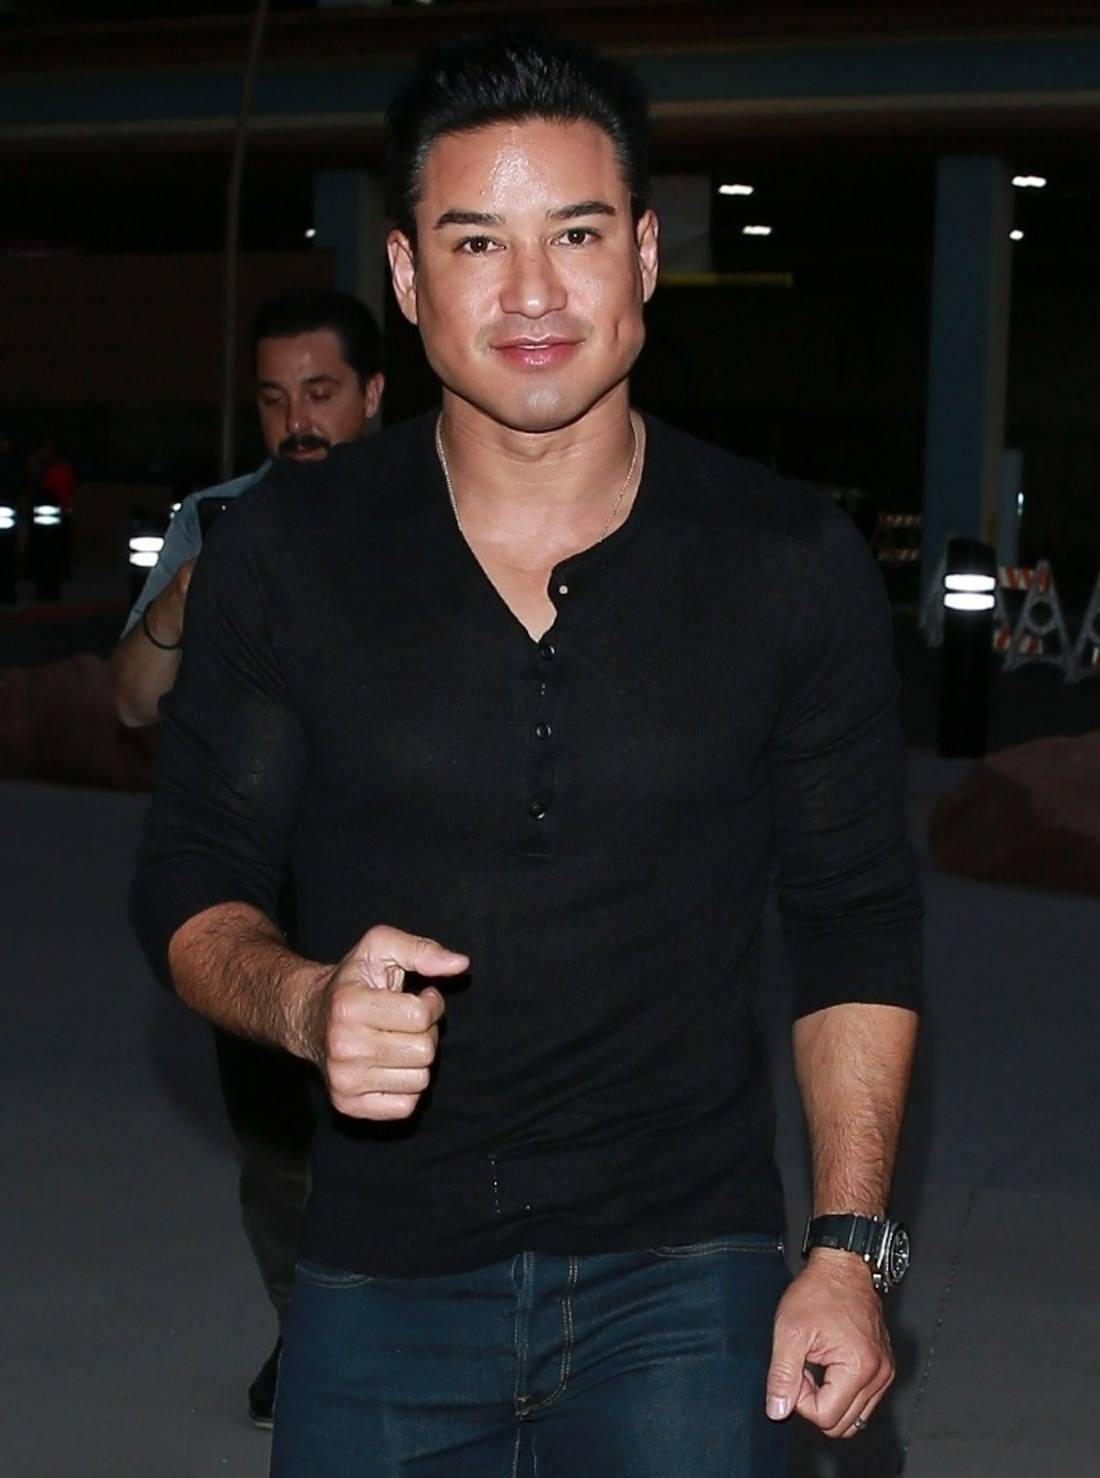 Mario Lopez is ready for the Alvarez vs. Jacobs fight in Las Vegas!